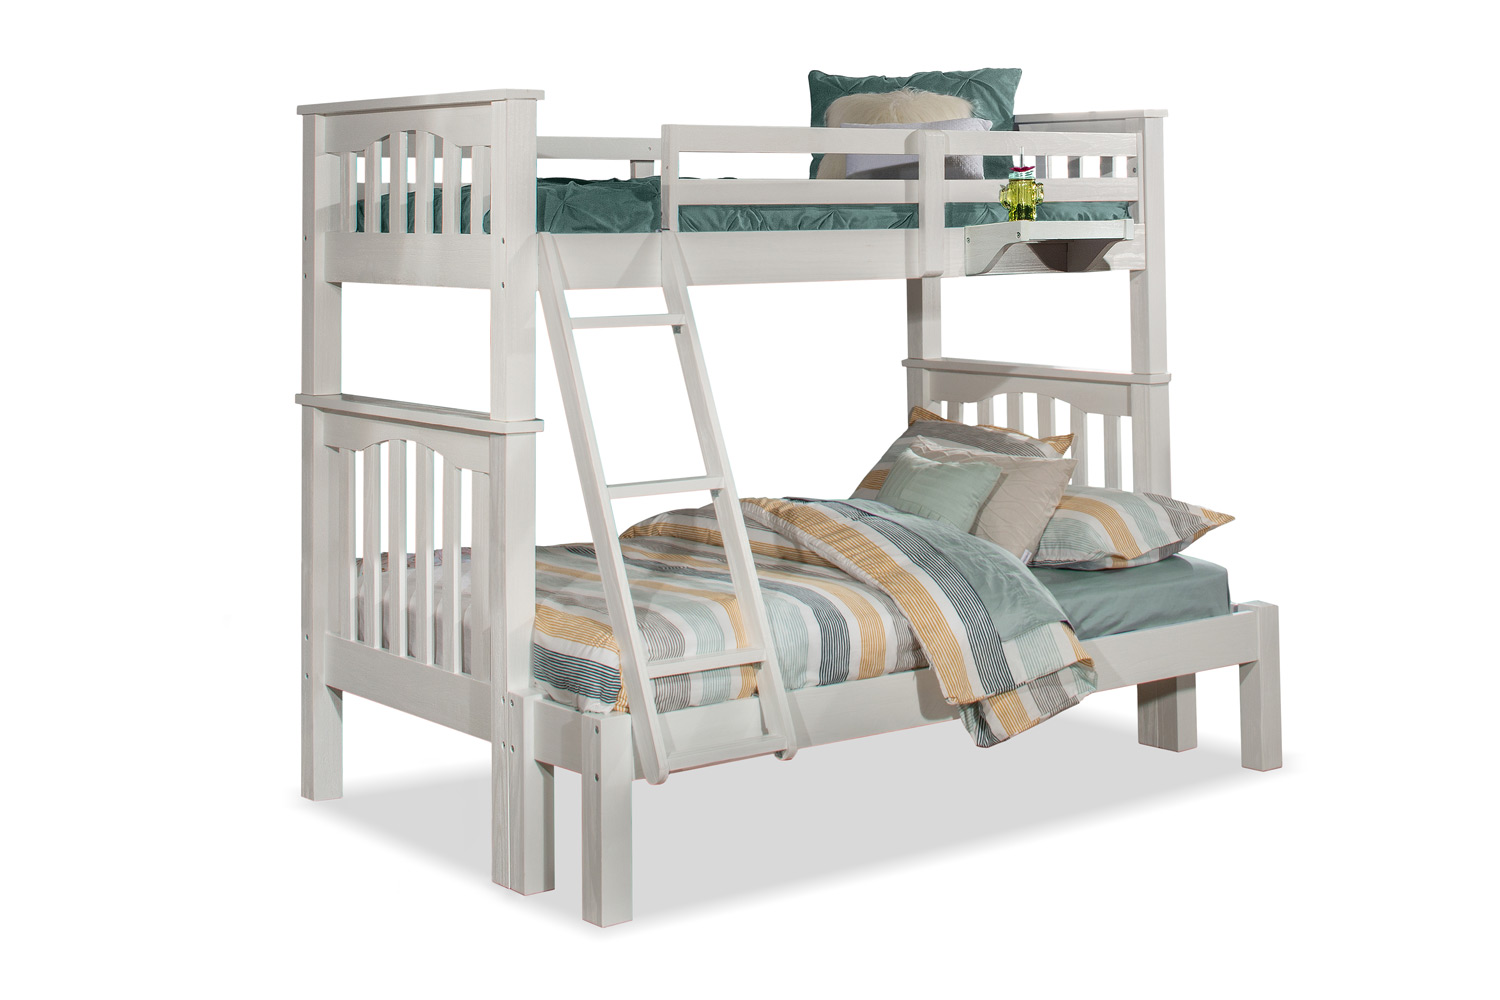 NE Kids Highlands Harper Twin/Full Bunk Bed and Hanging Nightstand - White Finish